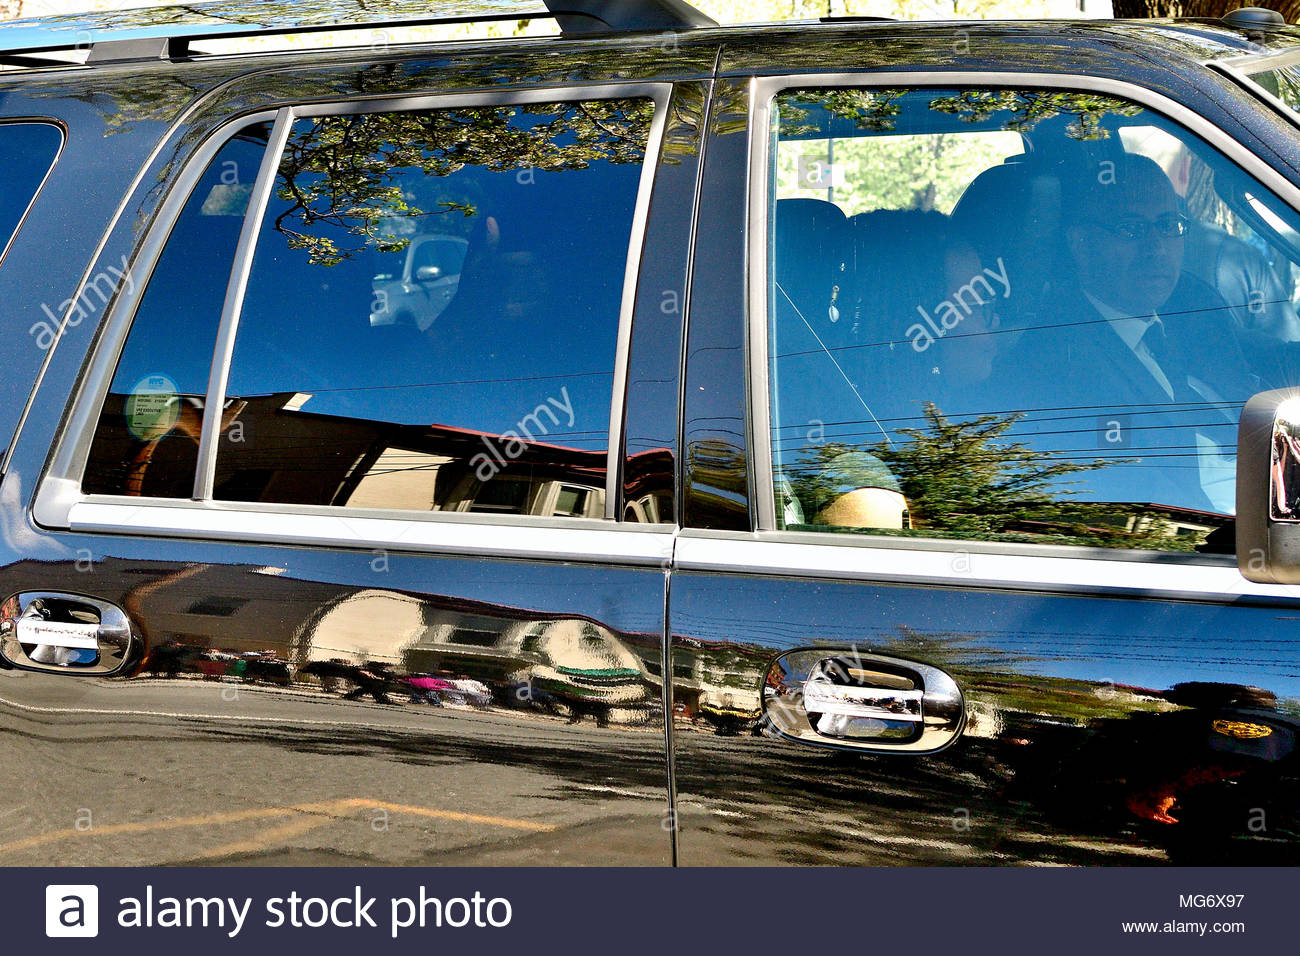 Norristown, USA. 26th Apr, 2018. Bill Cosby departs after learning of the guilty verdict in the sexual assault trial, at Montgomery County Court House in Norristown, PA, USA, on April 26, 2018. Credit: Bastiaan Slabbers/Alamy Live News - Stock Image